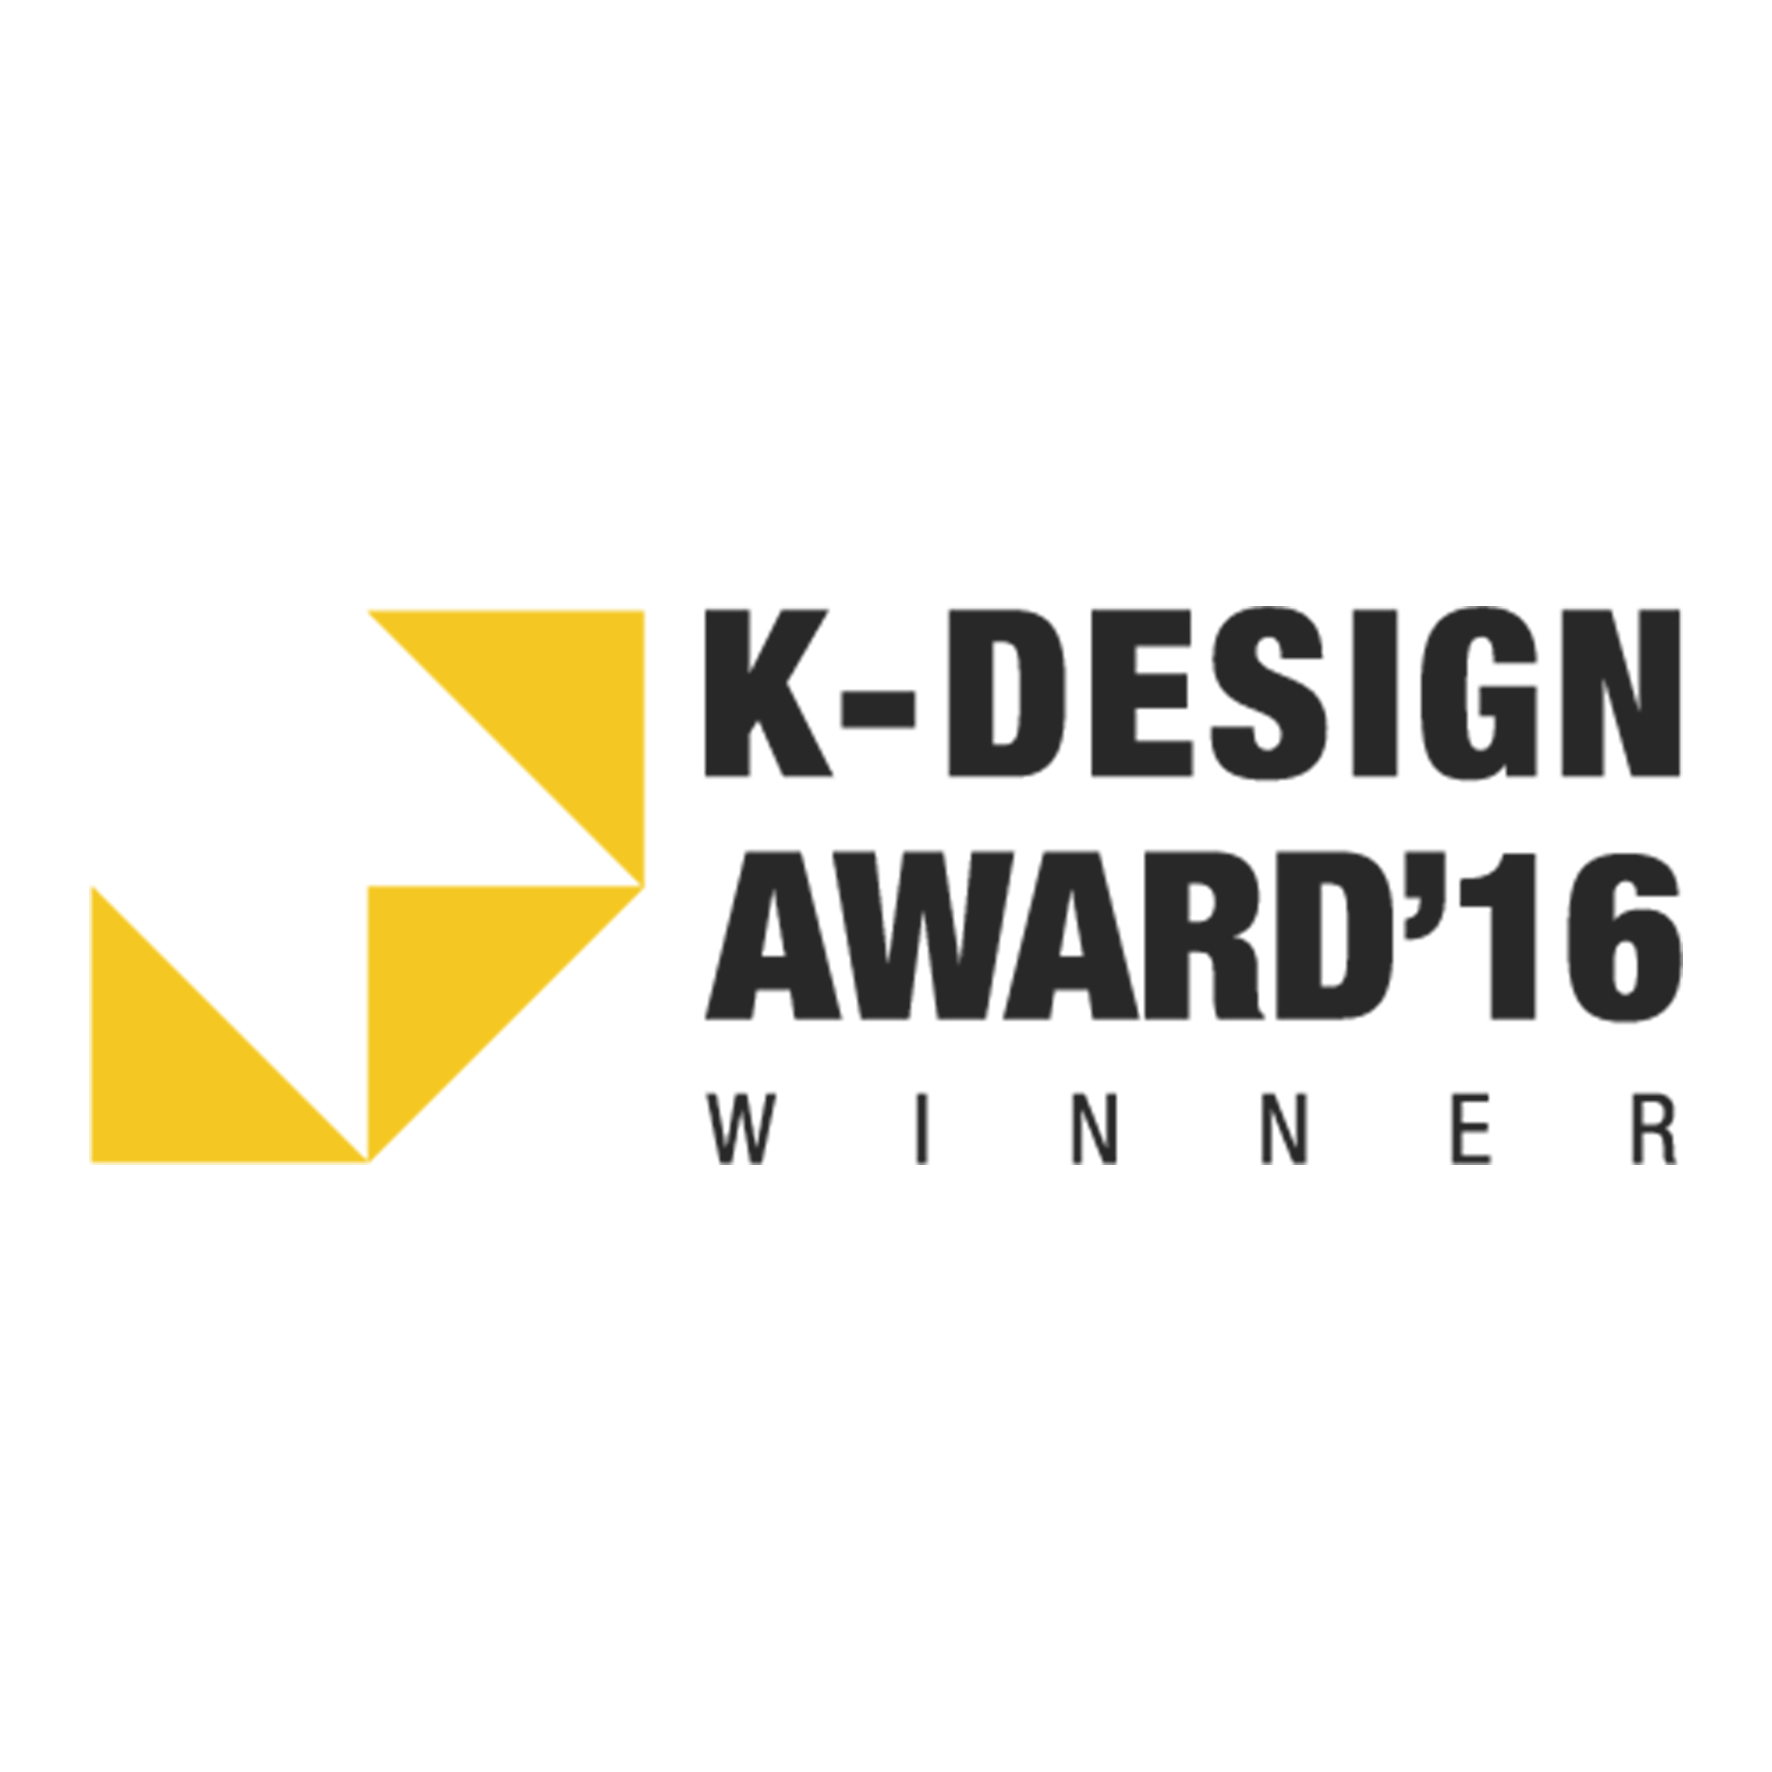 Award Winner, K-Design Award 2016